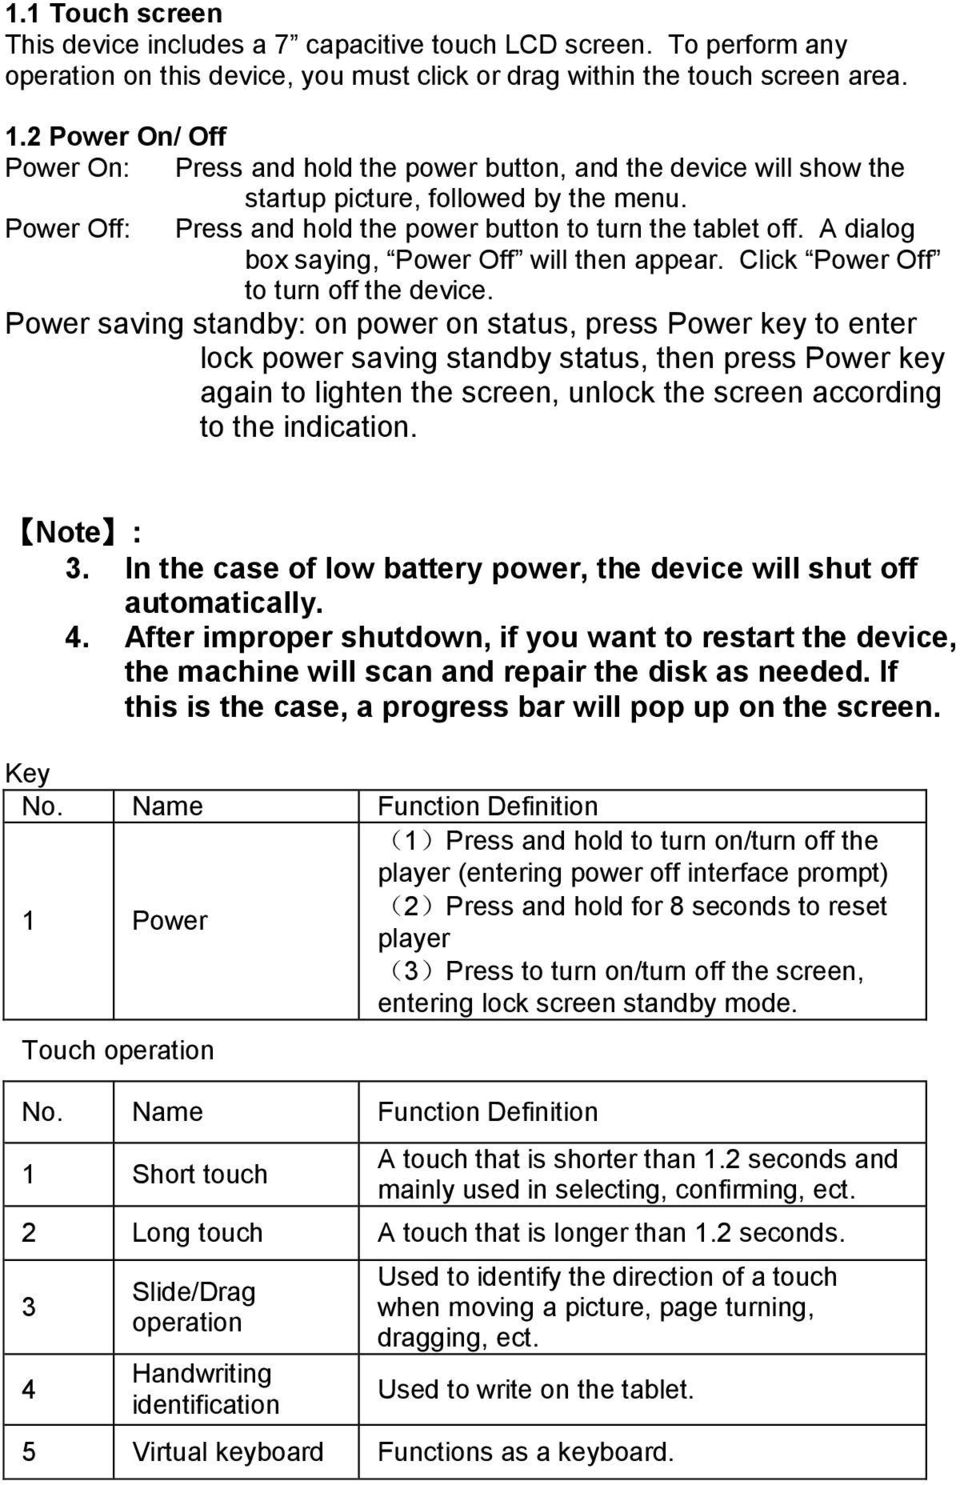 Power saving standby: on power on status, press Power key to enter lock power saving standby status, then press Power key again to lighten the screen, unlock the screen according to the indication.